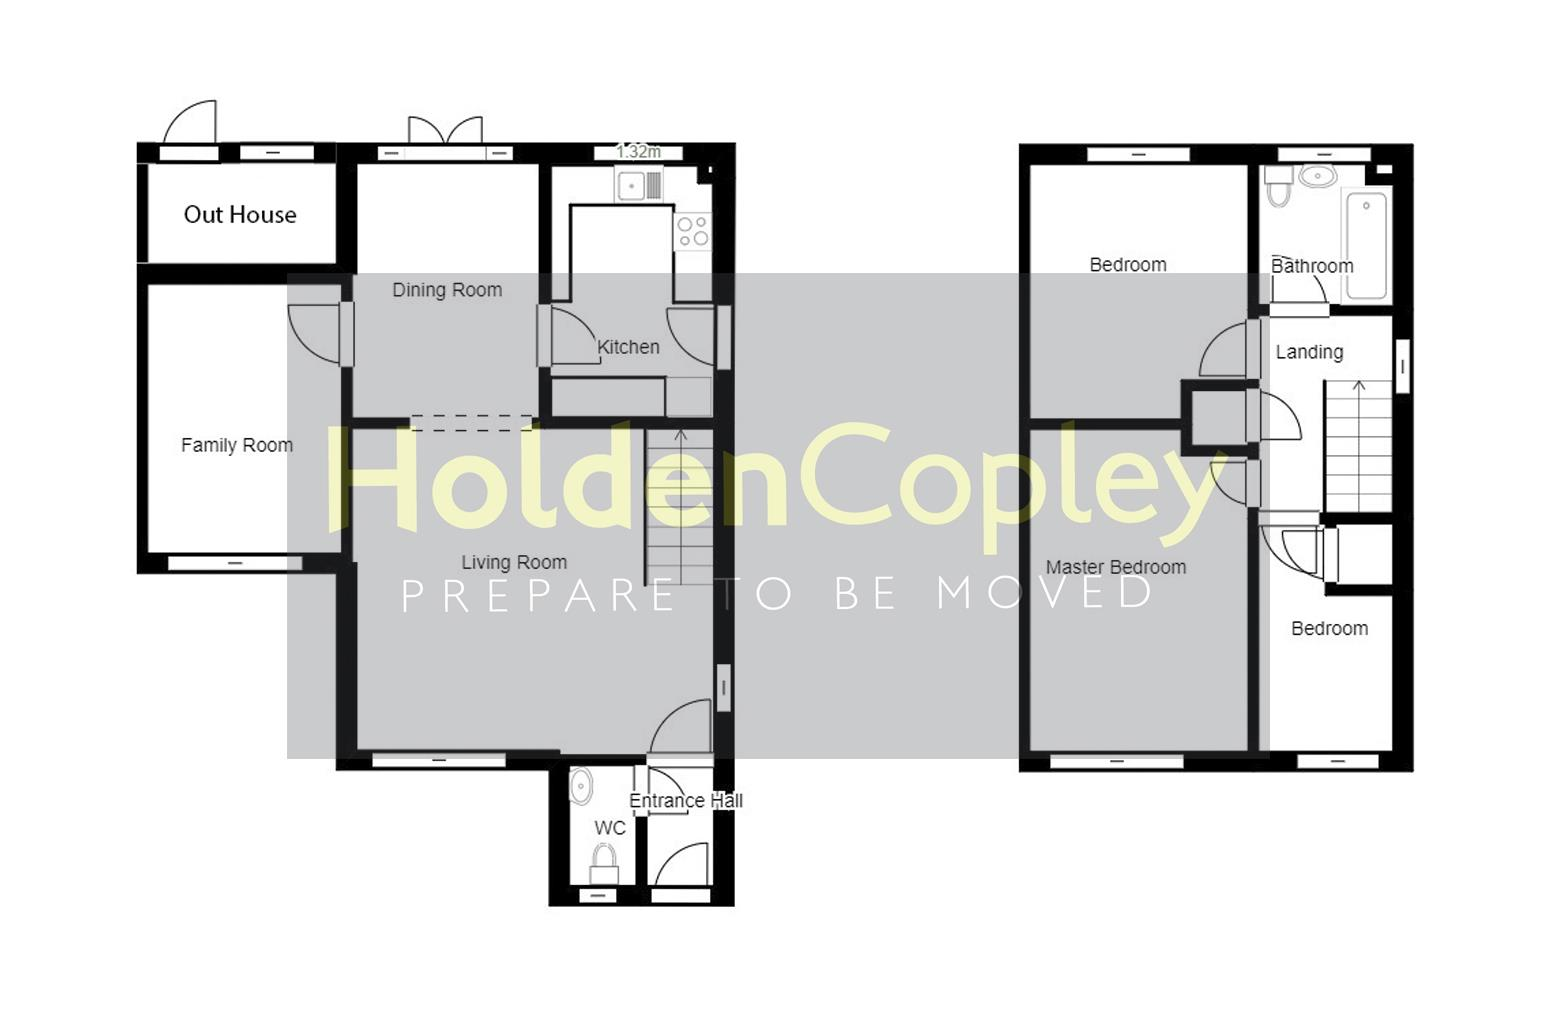 Floorplan for Claremont Drive, West Bridgford, Nottinghamshire, NG2 7LW